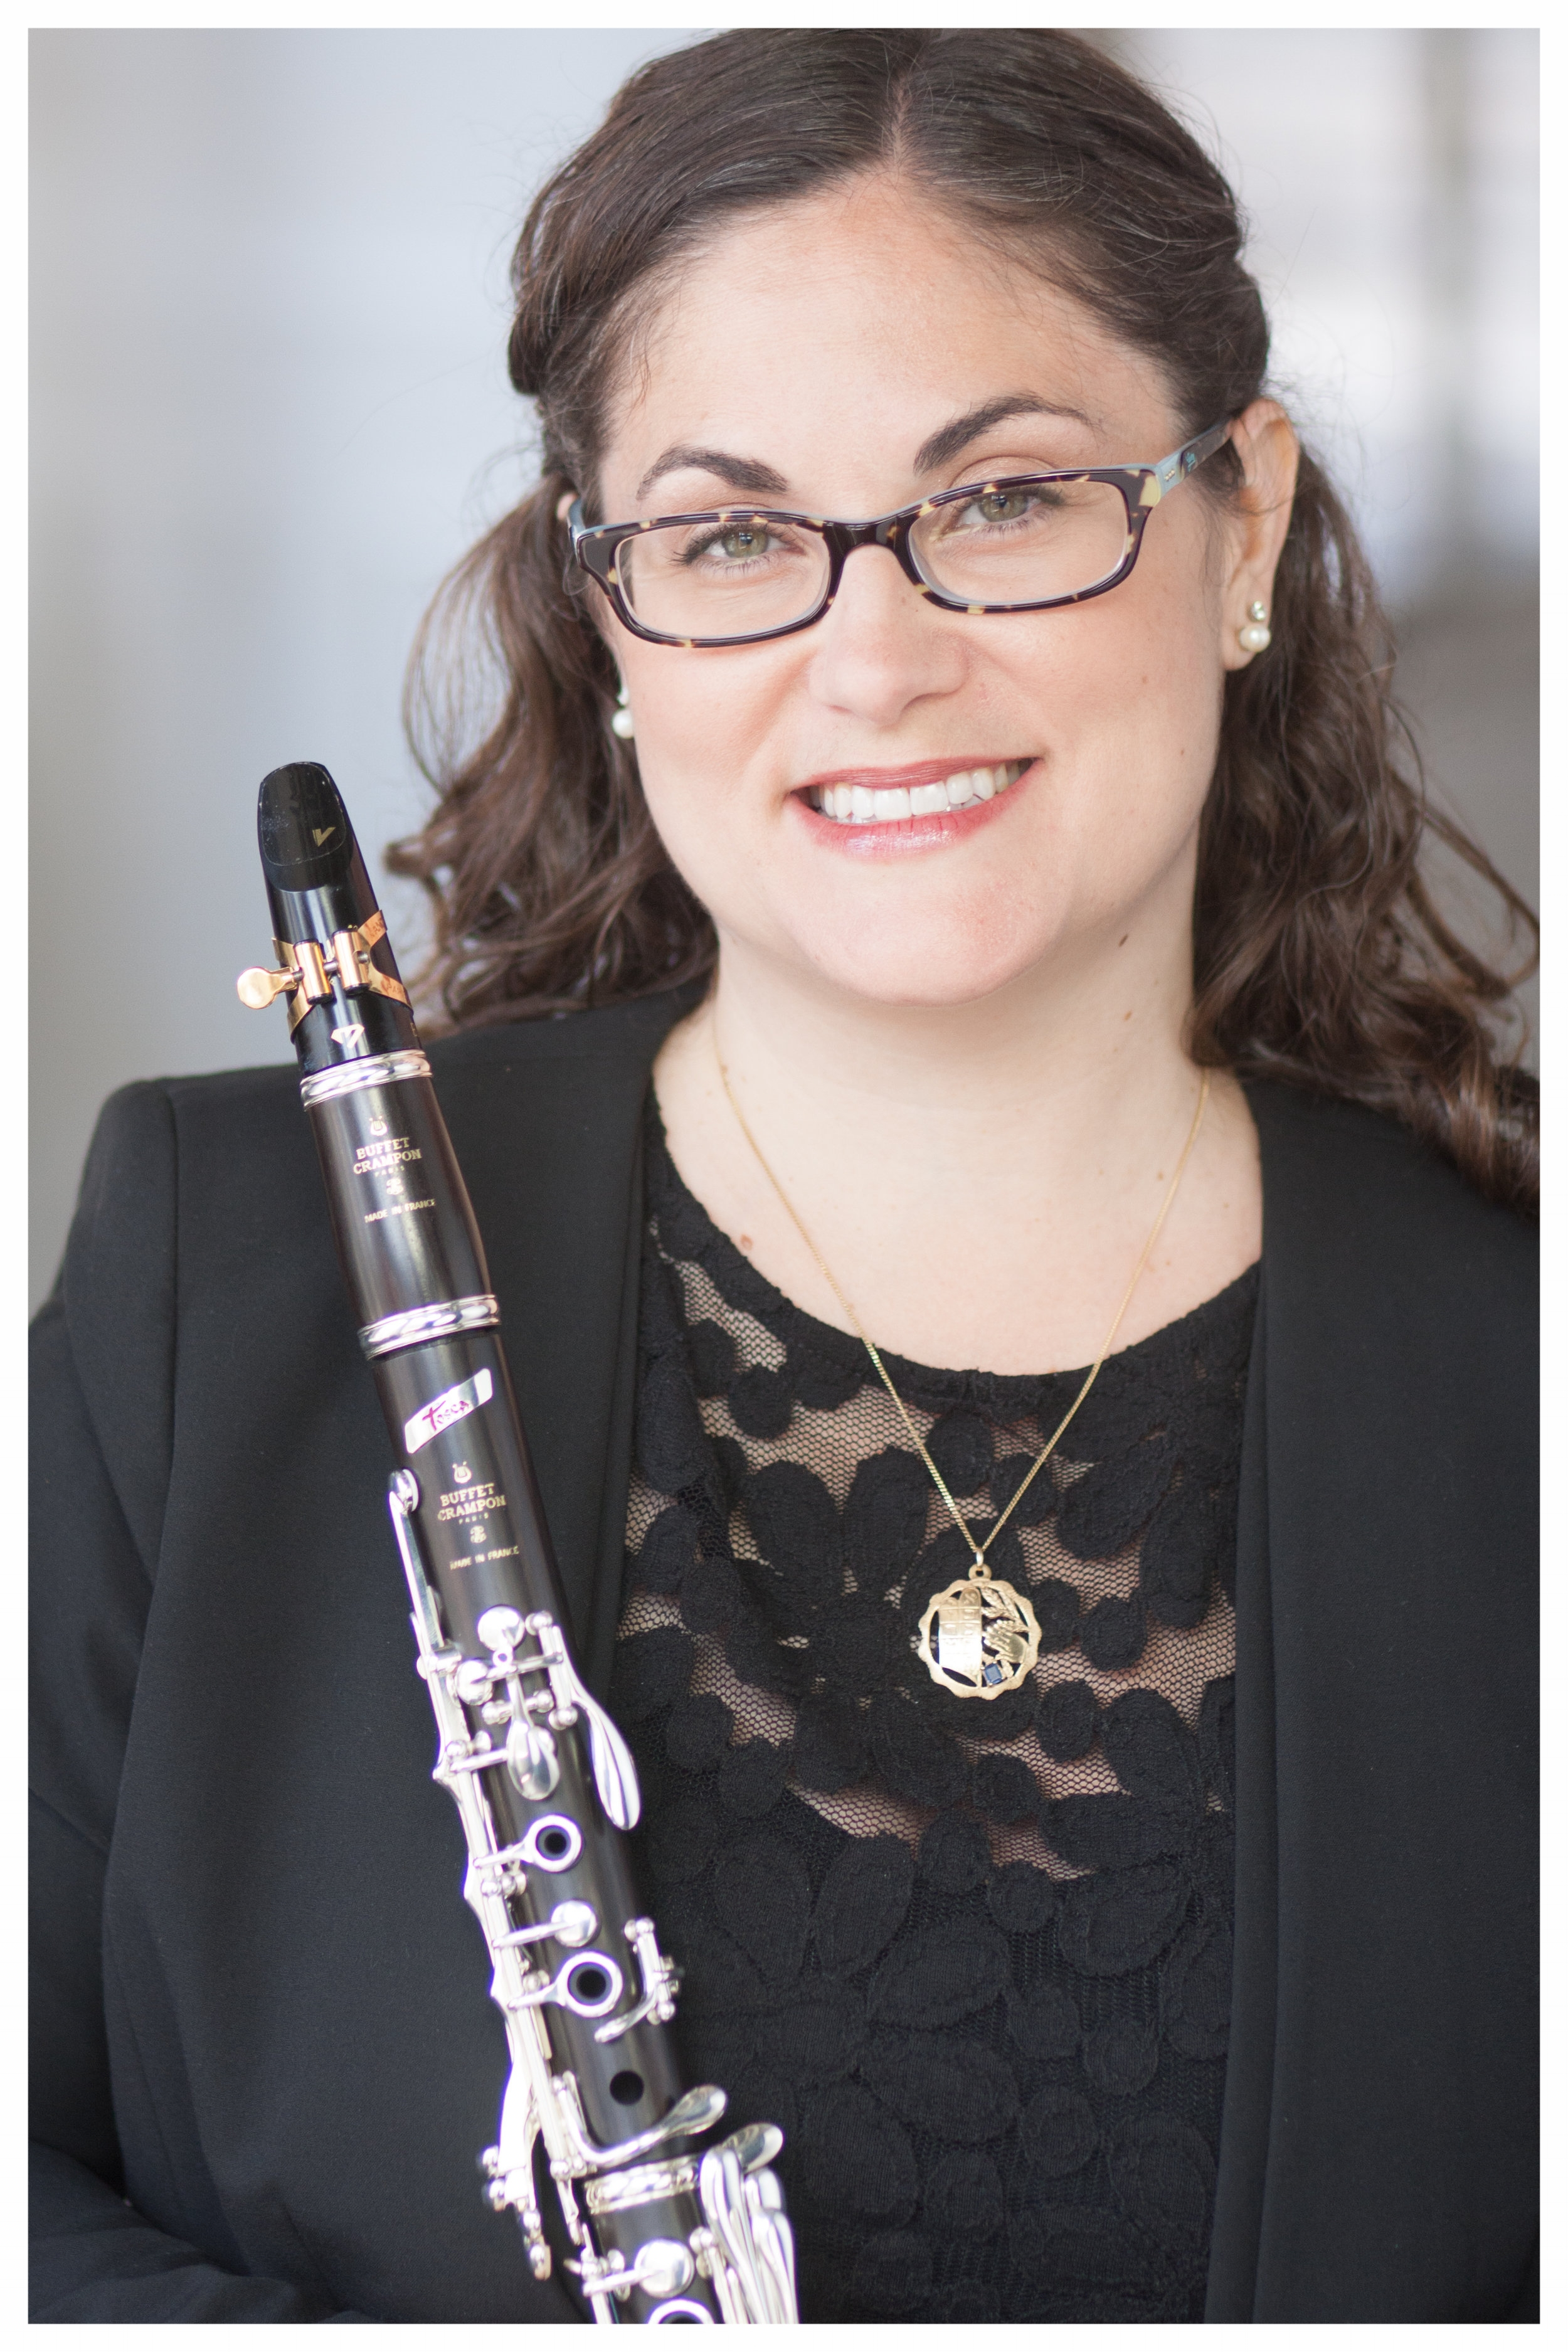 teaching - Throughout my professional career, I have developed a well-rounded curriculum for the aspiring clarinetist that is based on a combination of current best practices and my own experience as a musician. By focusing on the needs of each student with regard to tone production, embouchure, breathing, posture, tonguing, rhythm, sight reading, and performance anxiety, I have been able to help them dramatically improve their technique.I have found that students usually fall into three categories: students that learn best through critical listening and observation of modeled technique, students that learn best through verbal explanation and discussion of concepts and technique, and students that learn through a combination of modeled technique and verbal explanations. My teaching method meets each student at their current level and responds to their diverse learning styles and professional goals. Students are motivated through a combined acquisition of knowledge and achievement. Level appropriate assignments and expectations are given to students setting them up for success.I teach phrasing and musical expression through my combined knowledge of music theory, and music history. The concept of sound and the development of musical style is not only taught through effective modeling during lessons, but through frequent concert attendance and listening to professional recordings. Further, students are encouraged to perform contemporary and traditional music celebrating a wide variety of genres, diverse cultural backgrounds, and music composed by women and minorities.Like any other aspect of musical development, the growing musician must practice performing. My students benefit from my instruction, as well as interaction with their peers, as they are given the opportunity to perform in masterclasses and studio recitals.My students often refer to me as part clarinet teacher and part life coach as our discussions often relate what we are doing in lessons to what lies ahead in life.This personal approach requires that I have a deep understanding for each students' individual goals and aspirations as a musician.With that in mind, my students are very familiar with the concept of setting long-term and short-term goals.As a result, they end each semester, year, and graduate feeling accomplished and able to realize their goals and aspirations as a professional clarinetist.Dr. Cohen is currently accepting new students of all ages and ability in the New York City and Long Island Areas. Please contact her to set up your lesson.